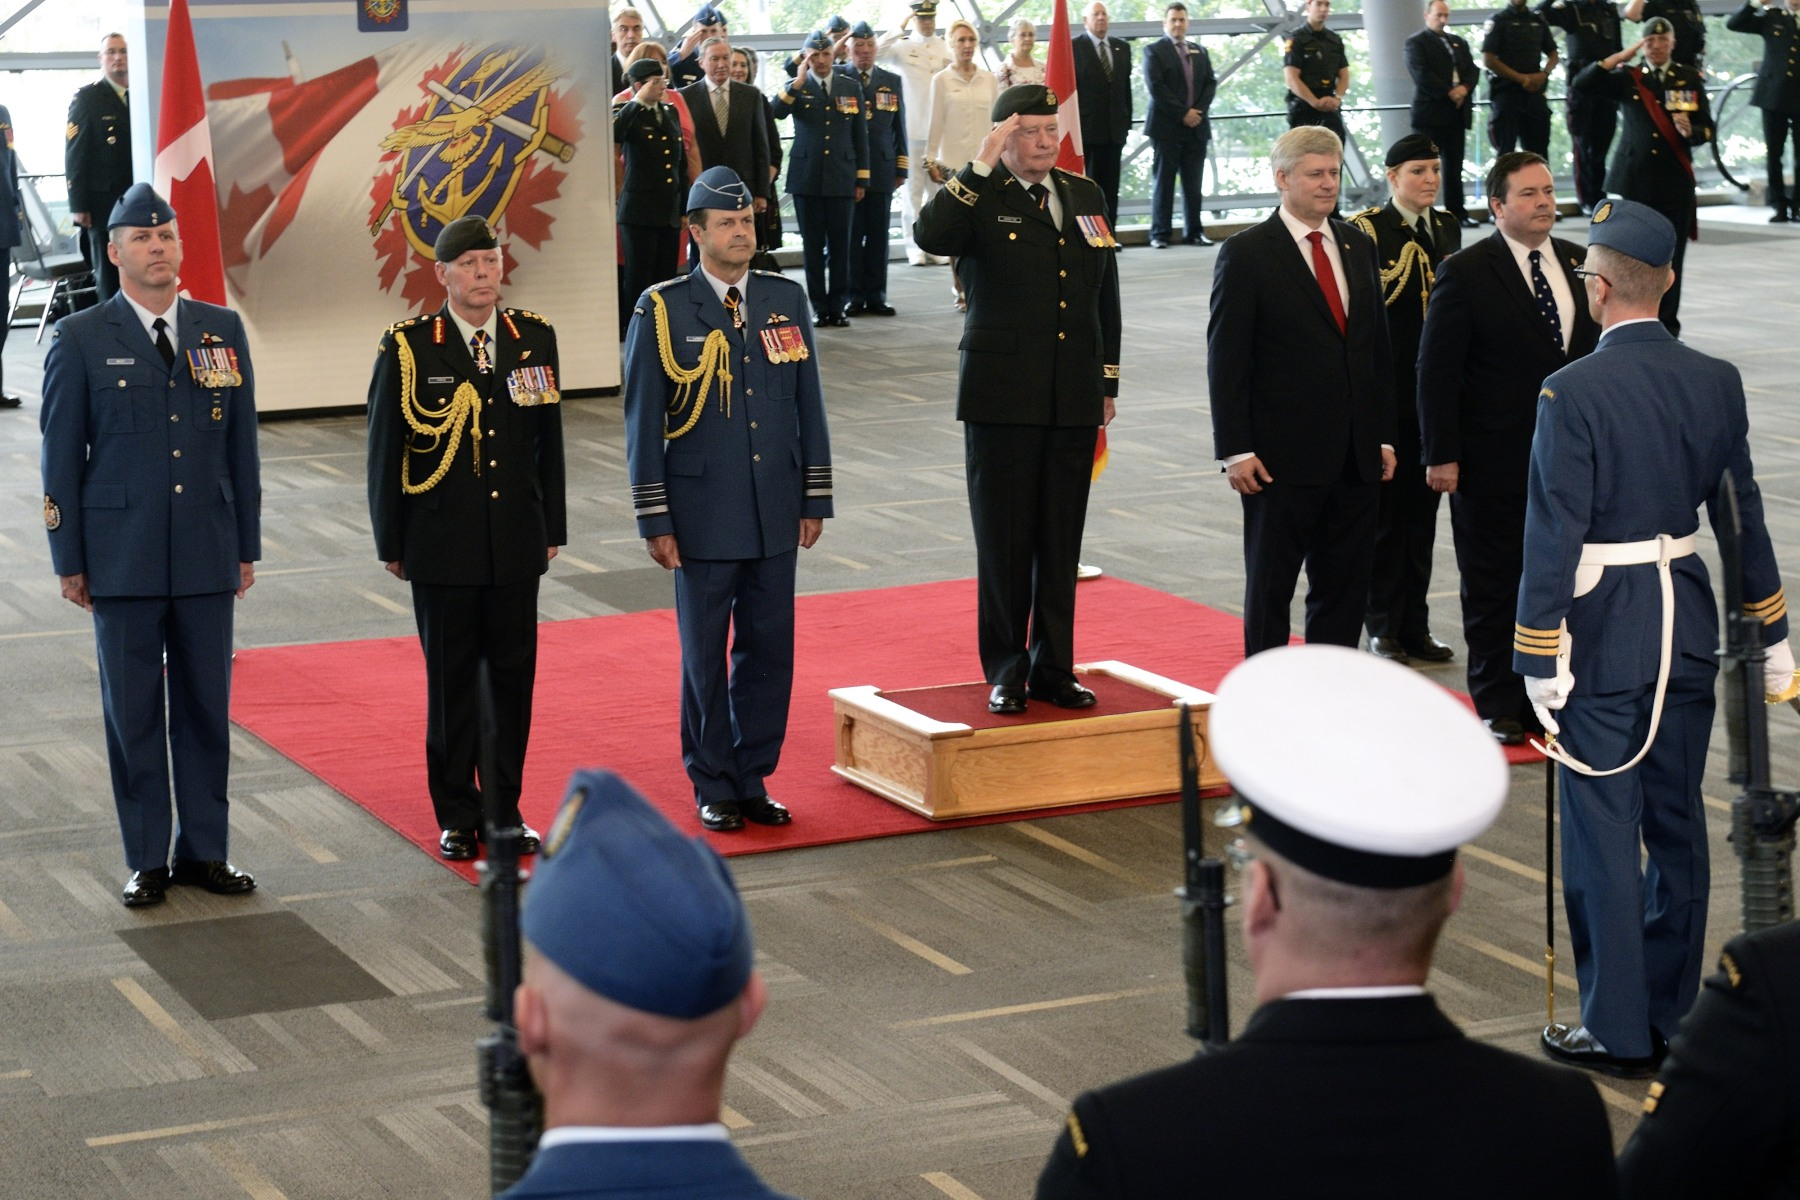 The Governor General received full military honours.